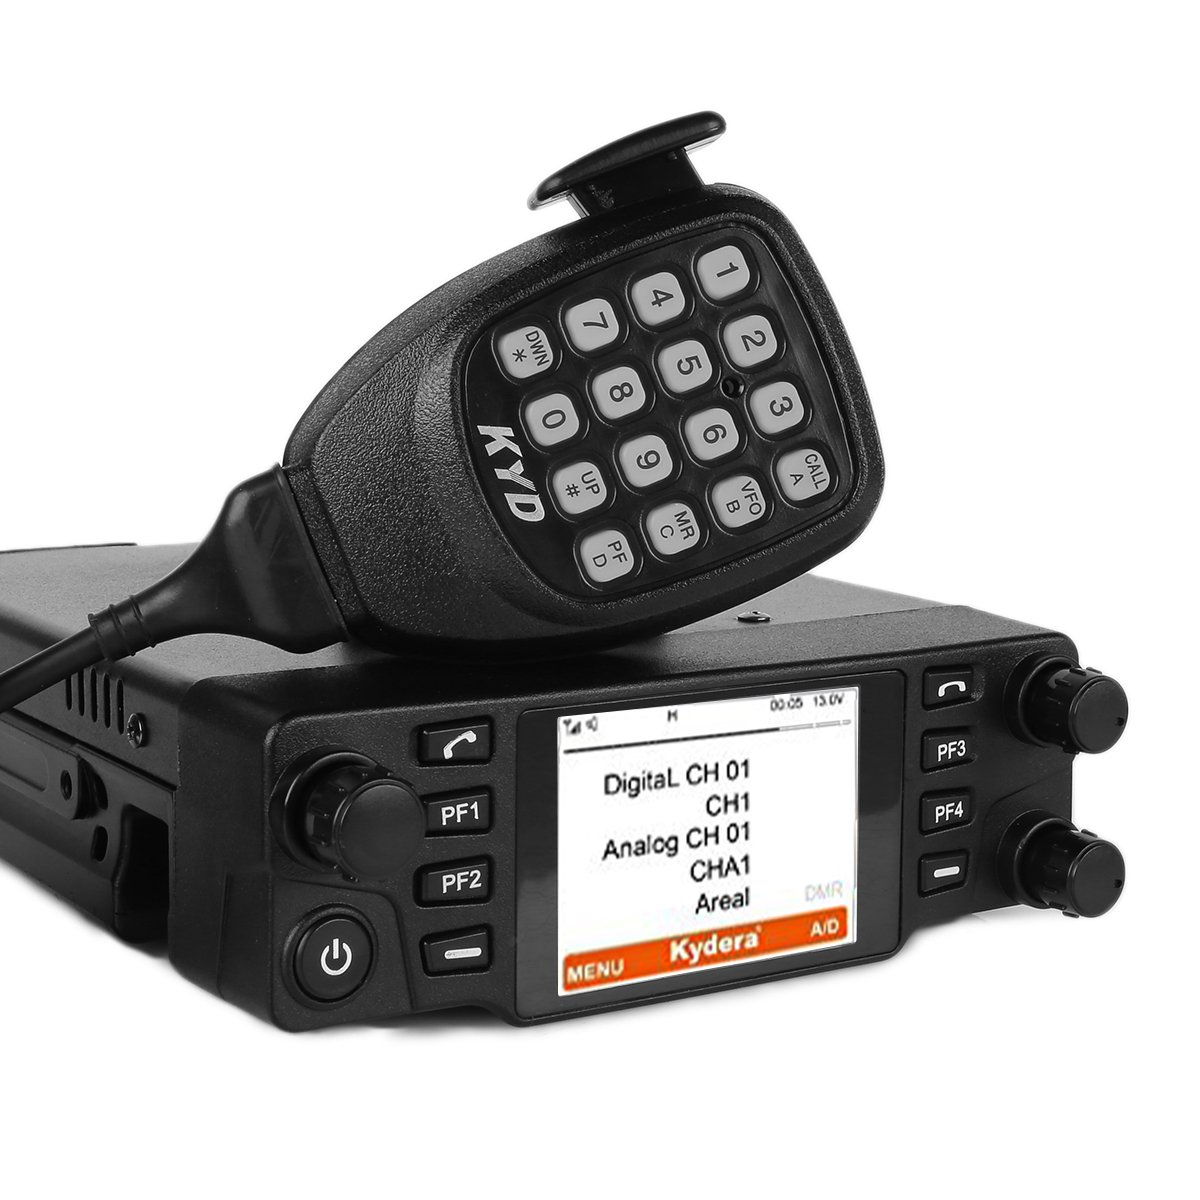 Kydera CDM-550H DMR 400-430 440-480Mhz UHF Large LCF Display 40W 25KM Digital Car Radio Ham Transceiver, with Programming Cable & Software by KYDERA (Image #6)